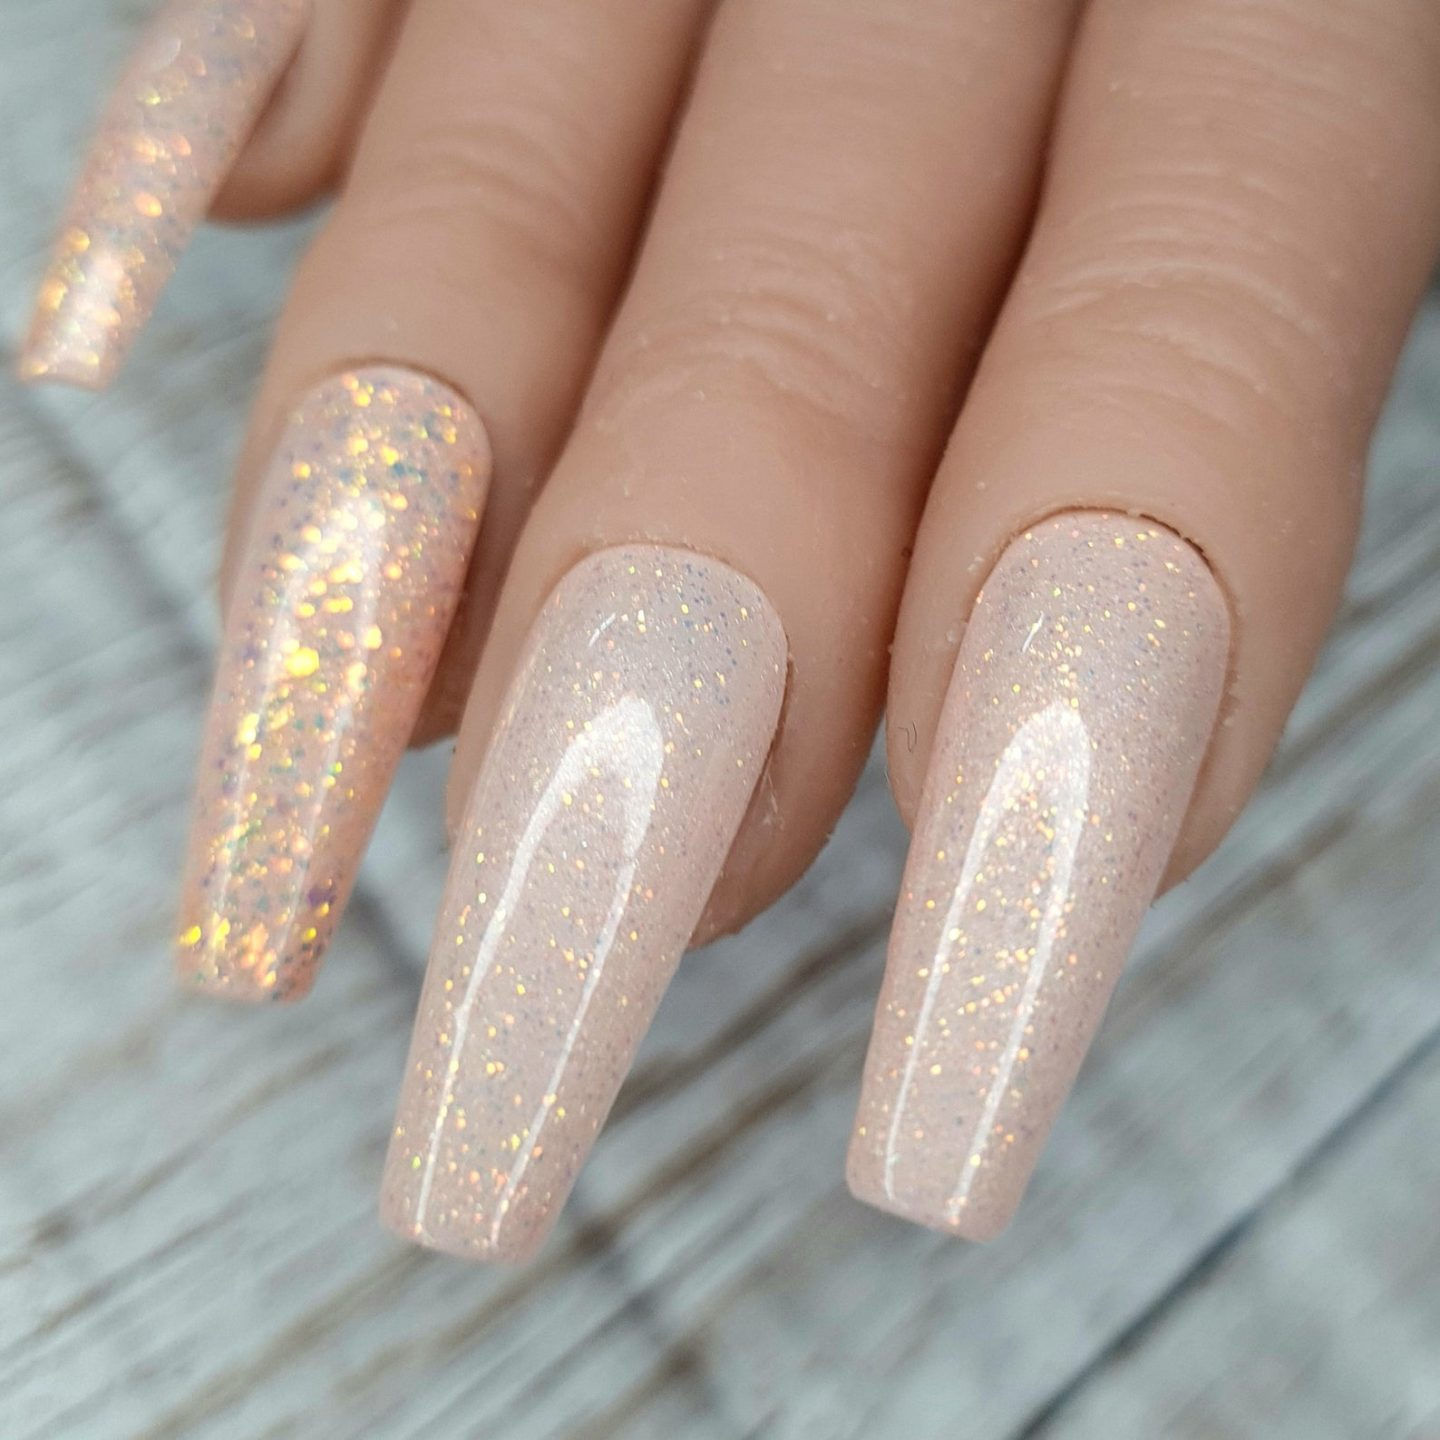 Nude nail designs with gold glitter